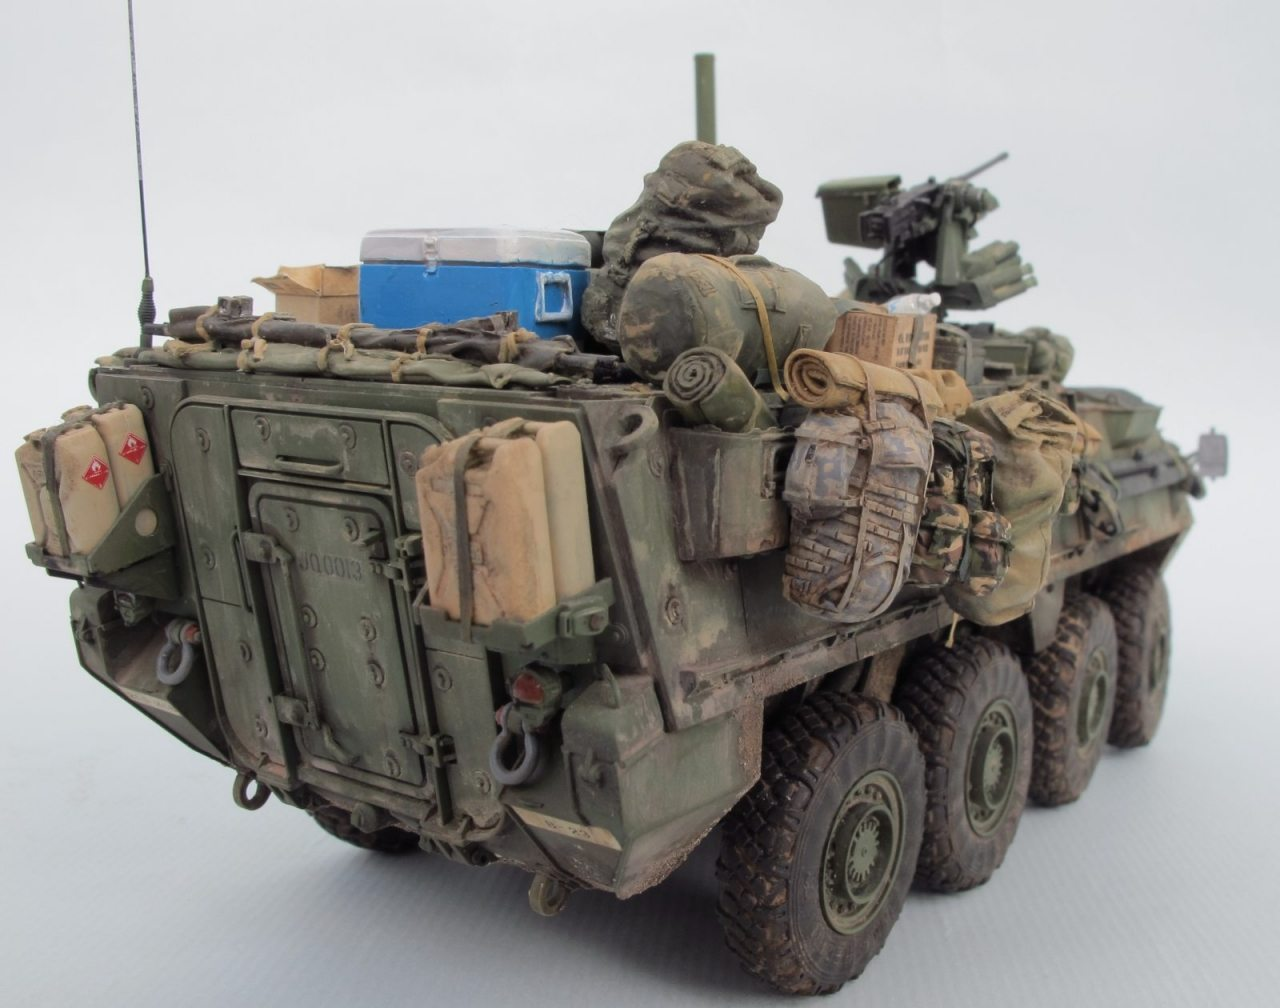 Ford Mustang Accessories >> M1126 Stryker Infantry Carrier Vehicle ICV from AFV Club 1/35 scale